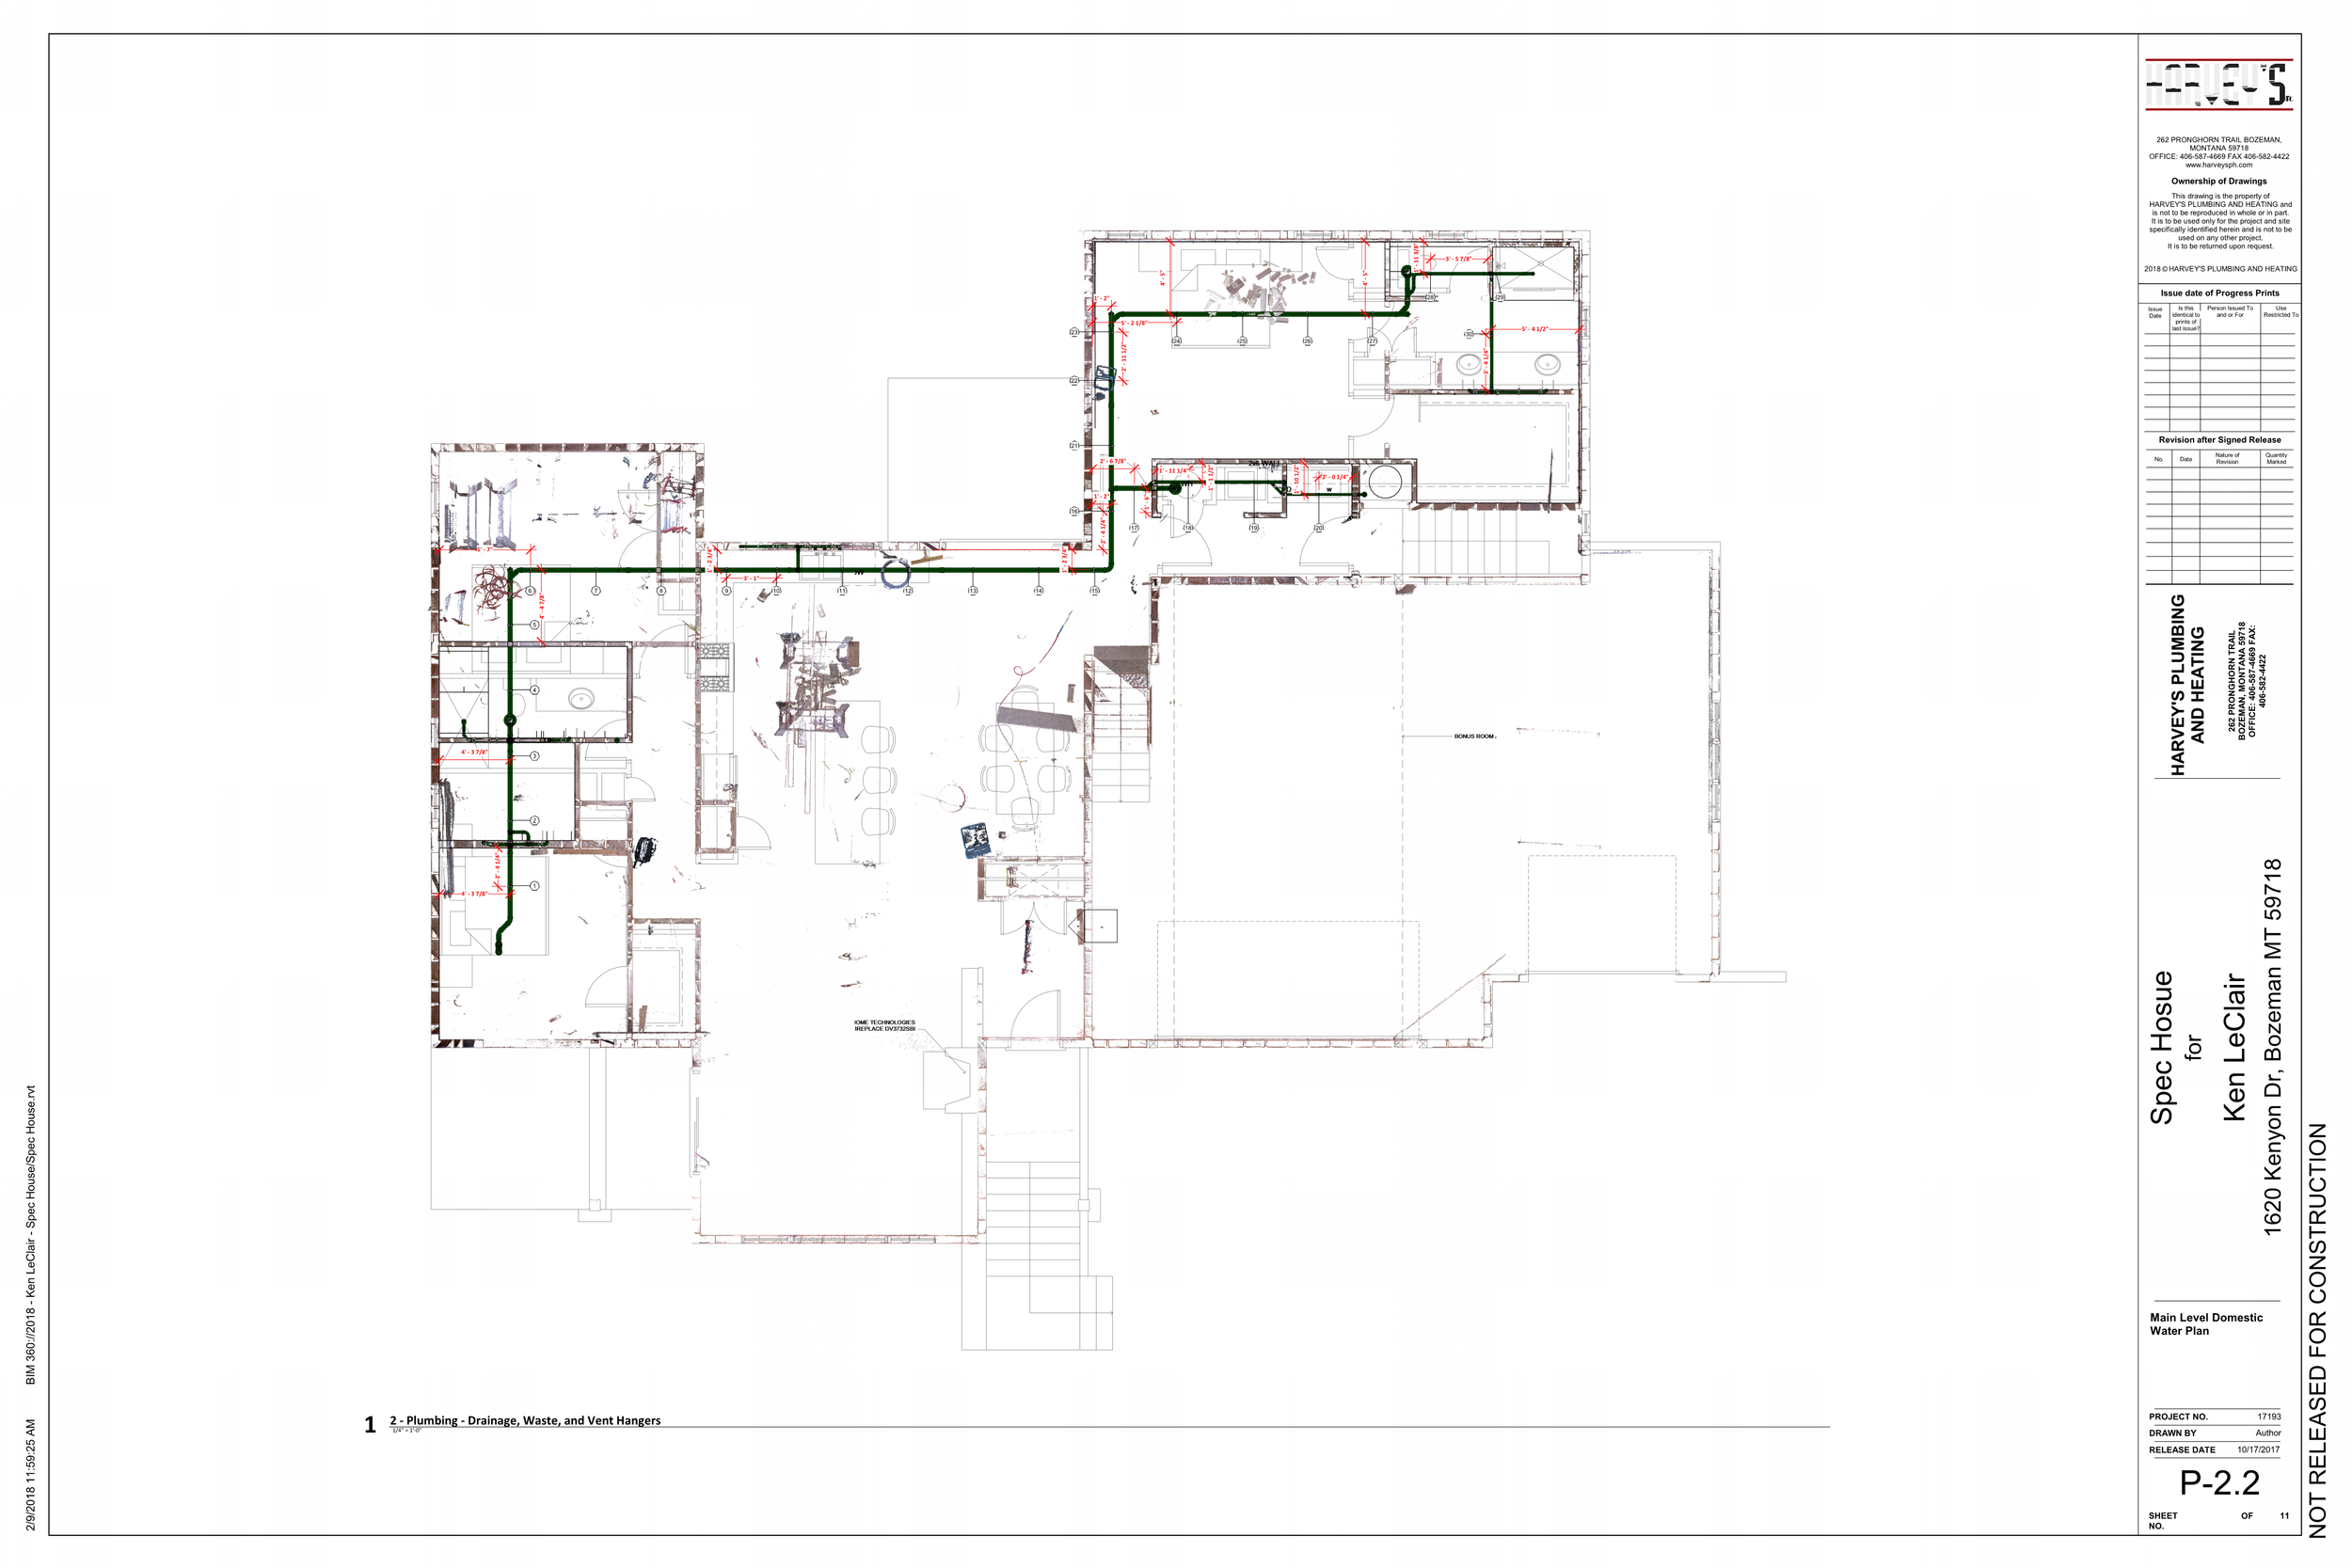 Spec House Floor Plans Page 002.png